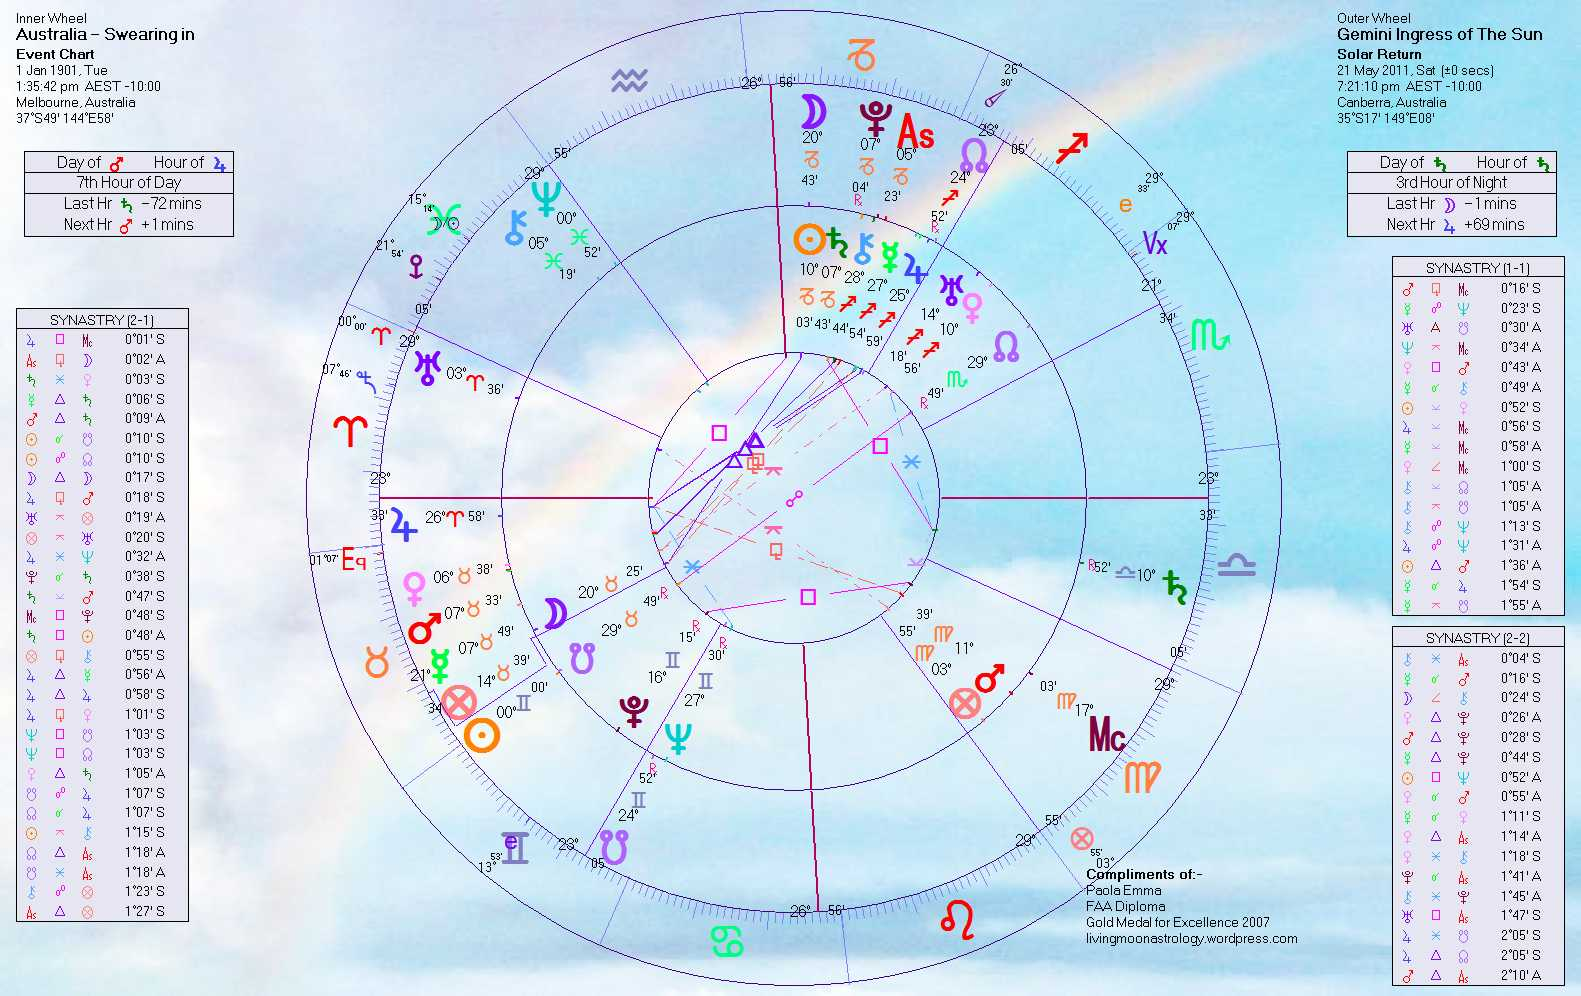 Hot spots around the world horoscopes for the ingress of the sun gemini australias birth chart click to enlarge nvjuhfo Gallery